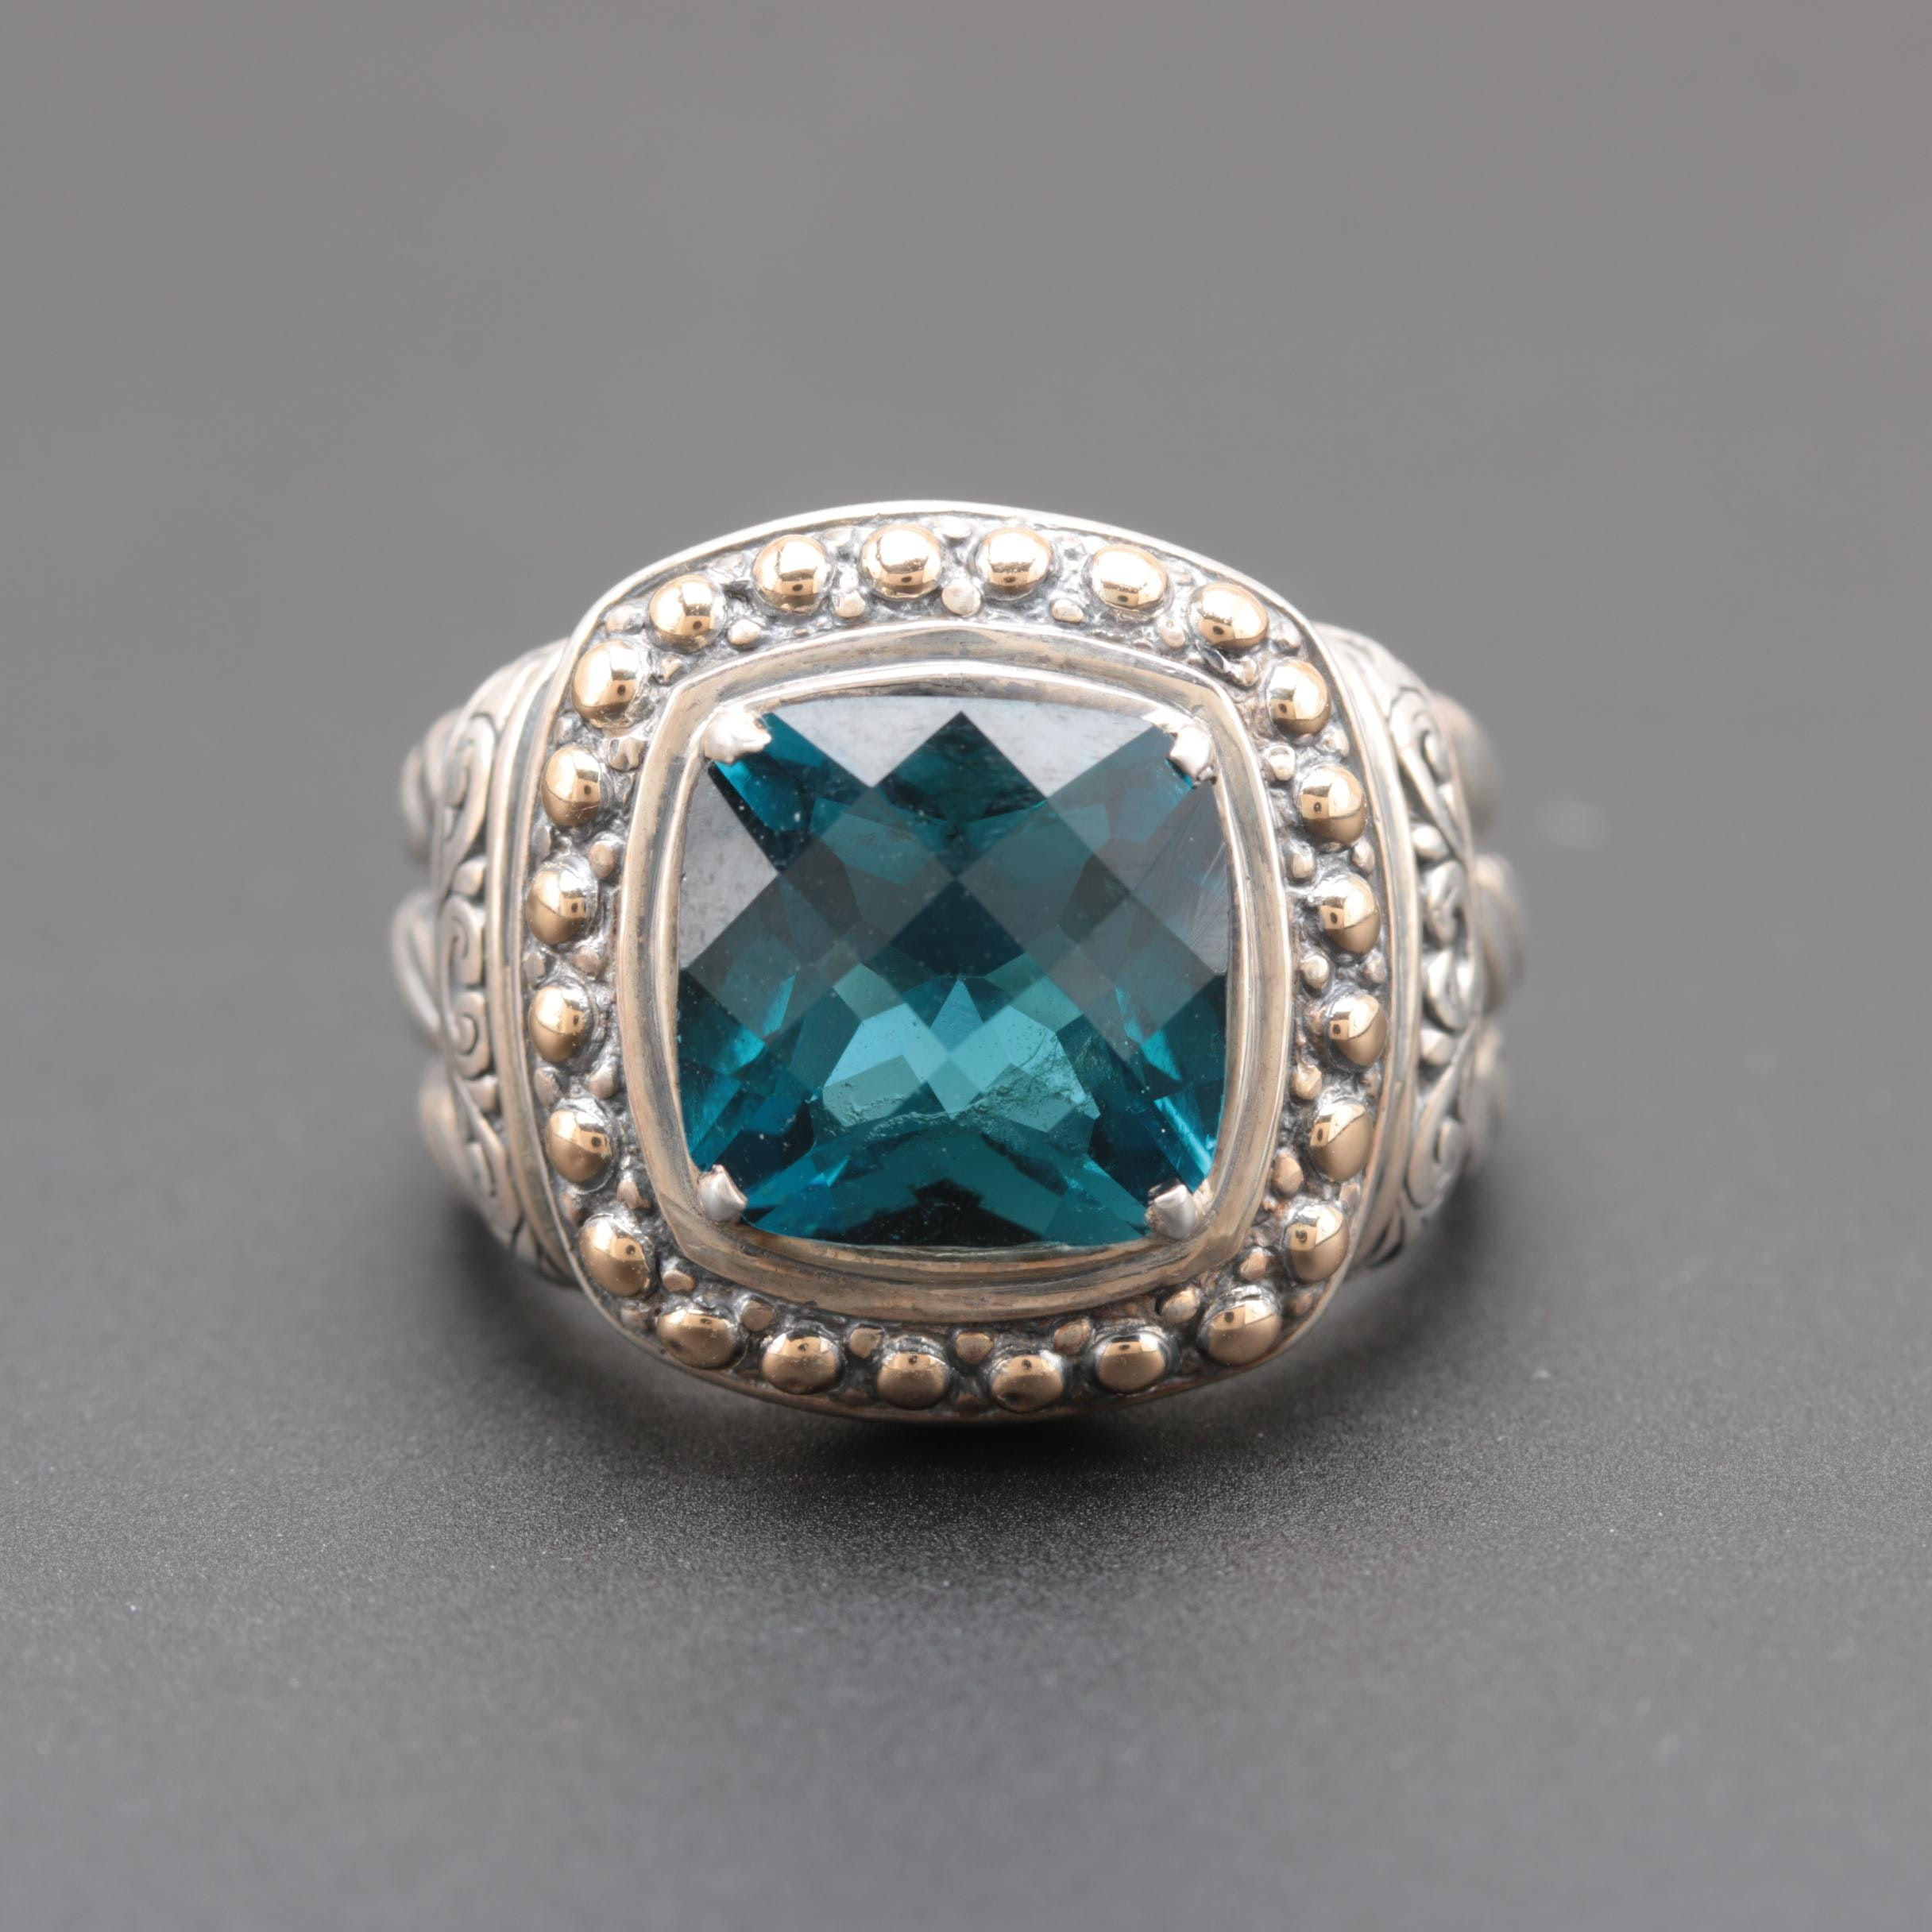 Sterling Silver London Blue Topaz Ring with 18K Yellow Gold Accents